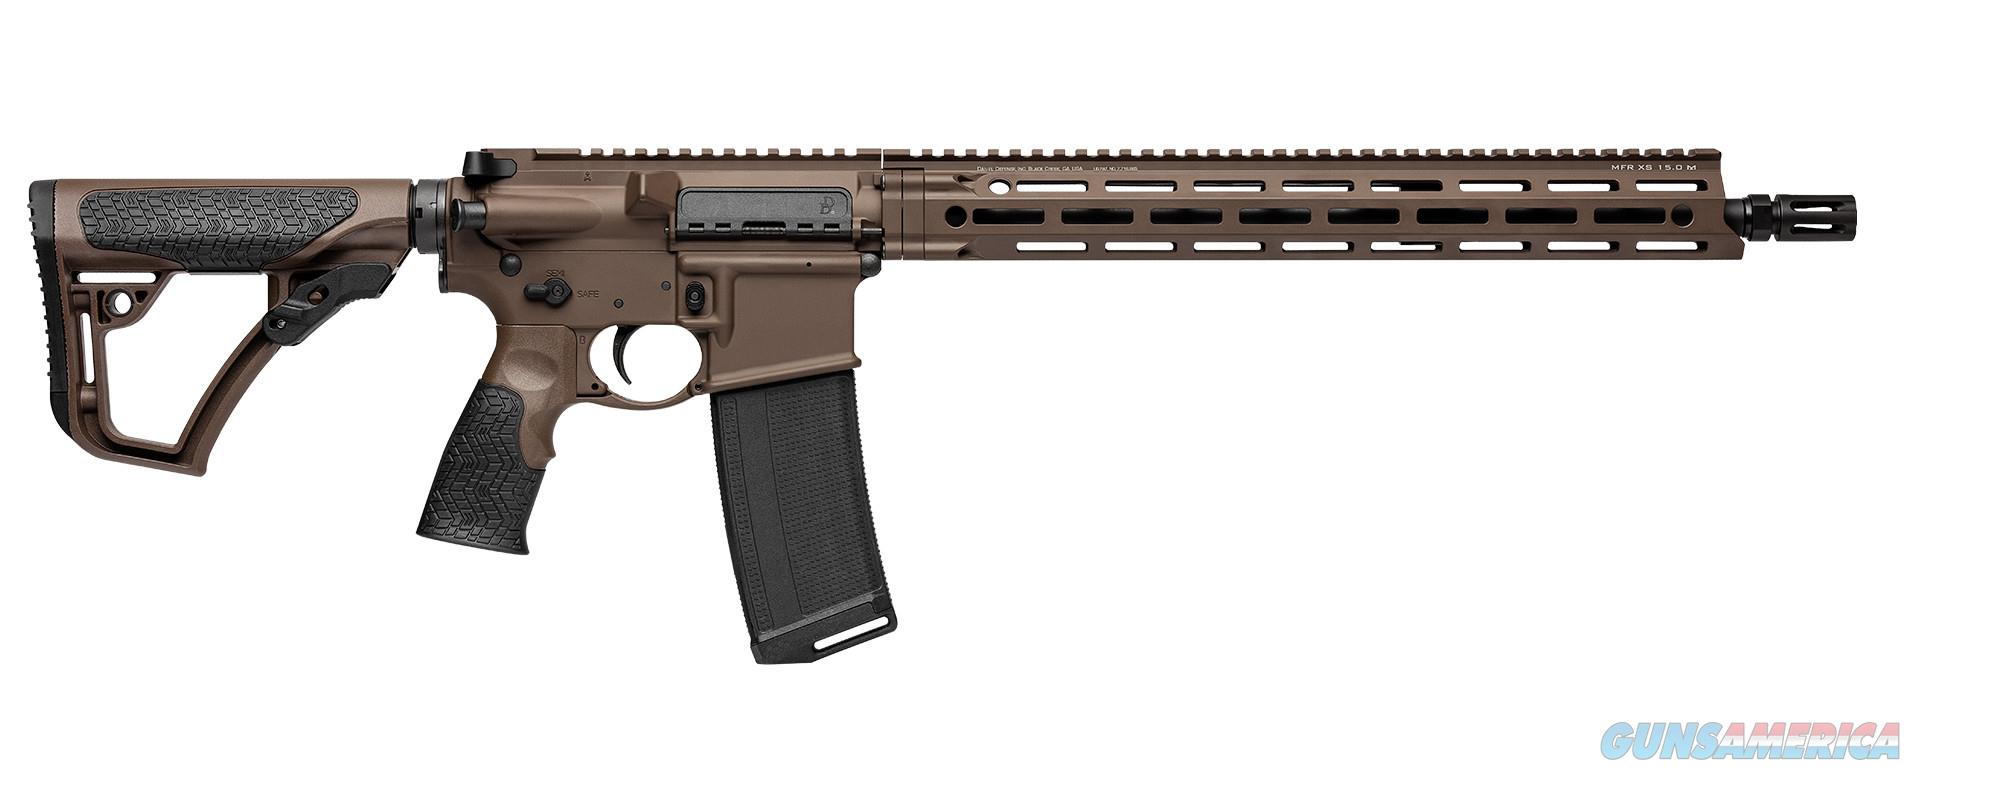 Daniel Defenese DDM4 V7 MilSpec+ Brown 5.56/223 FREE 120 DAY LAYAWAY & FREE SHIPPING 02-128-02338-047 815604018562  Guns > Rifles > Daniel Defense > Complete Rifles